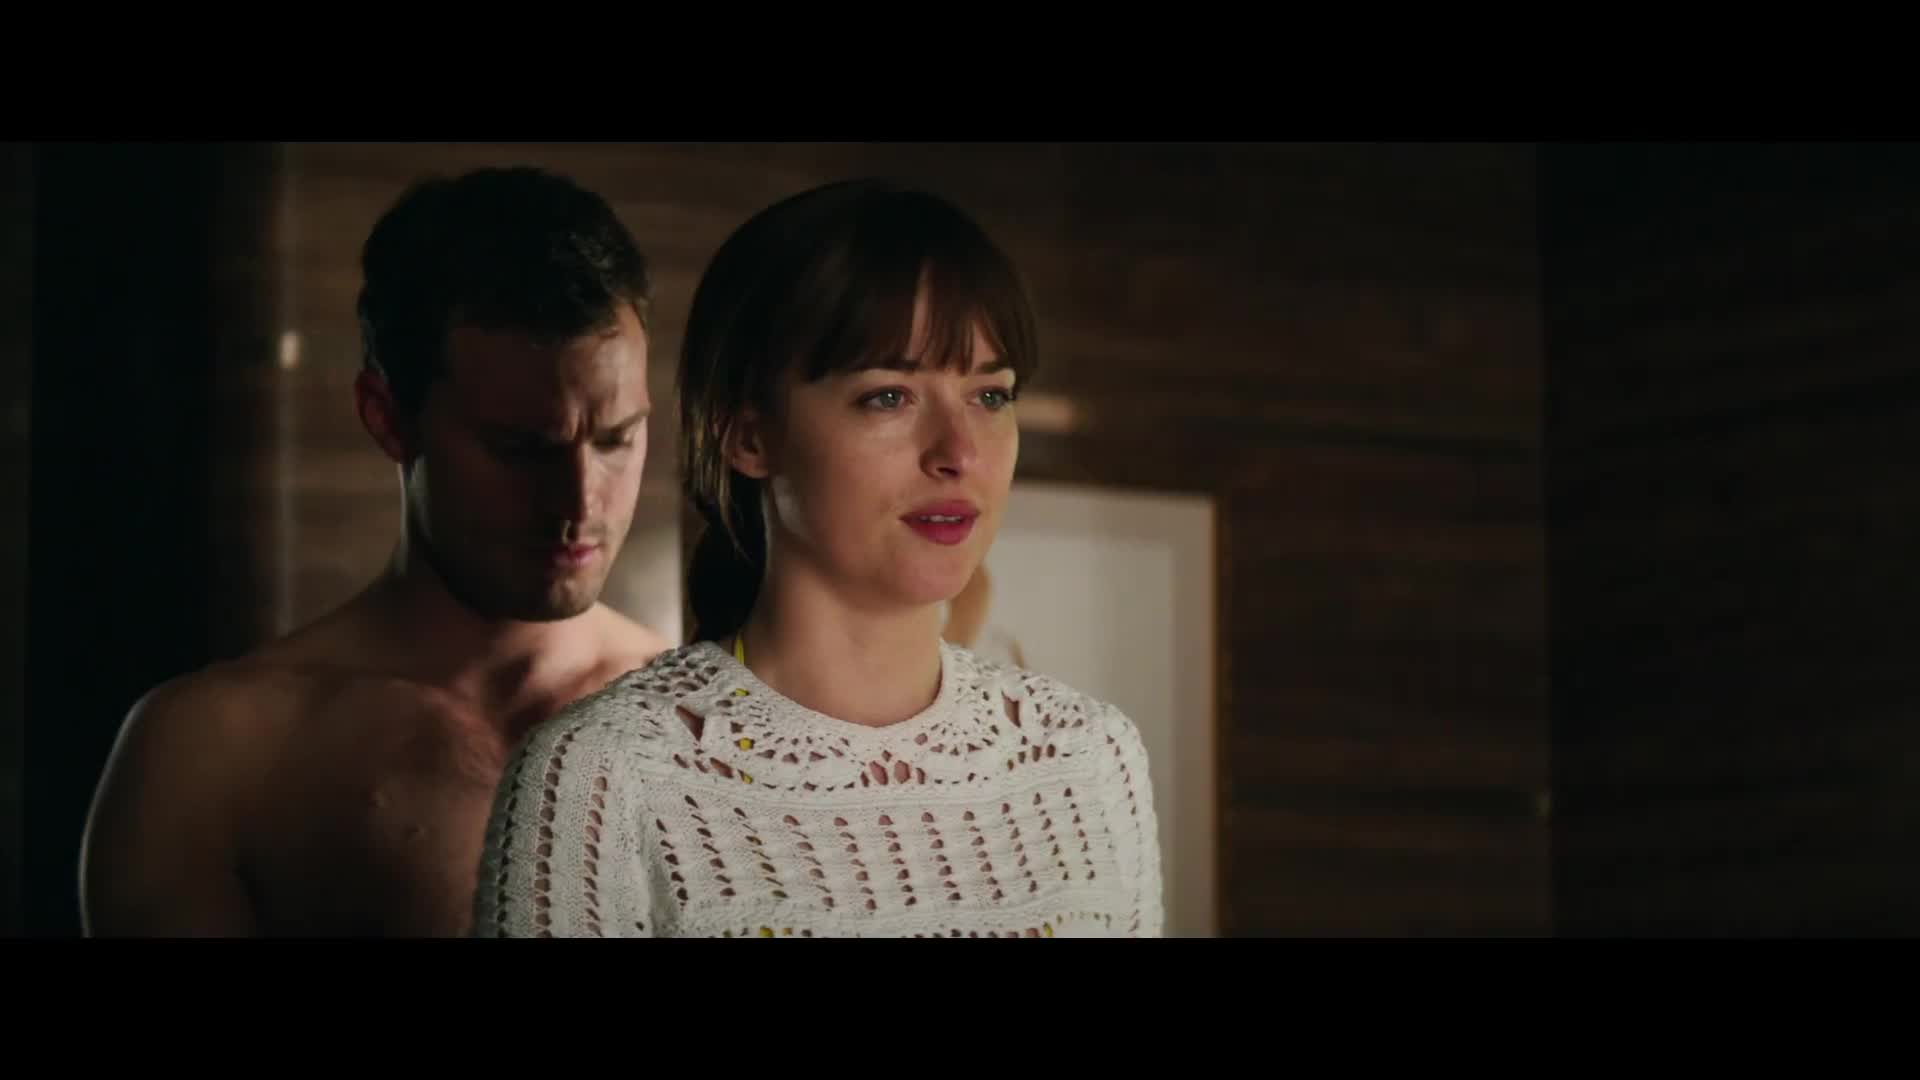 Official Trailer #2 from Fifty Shades Freed (2018)